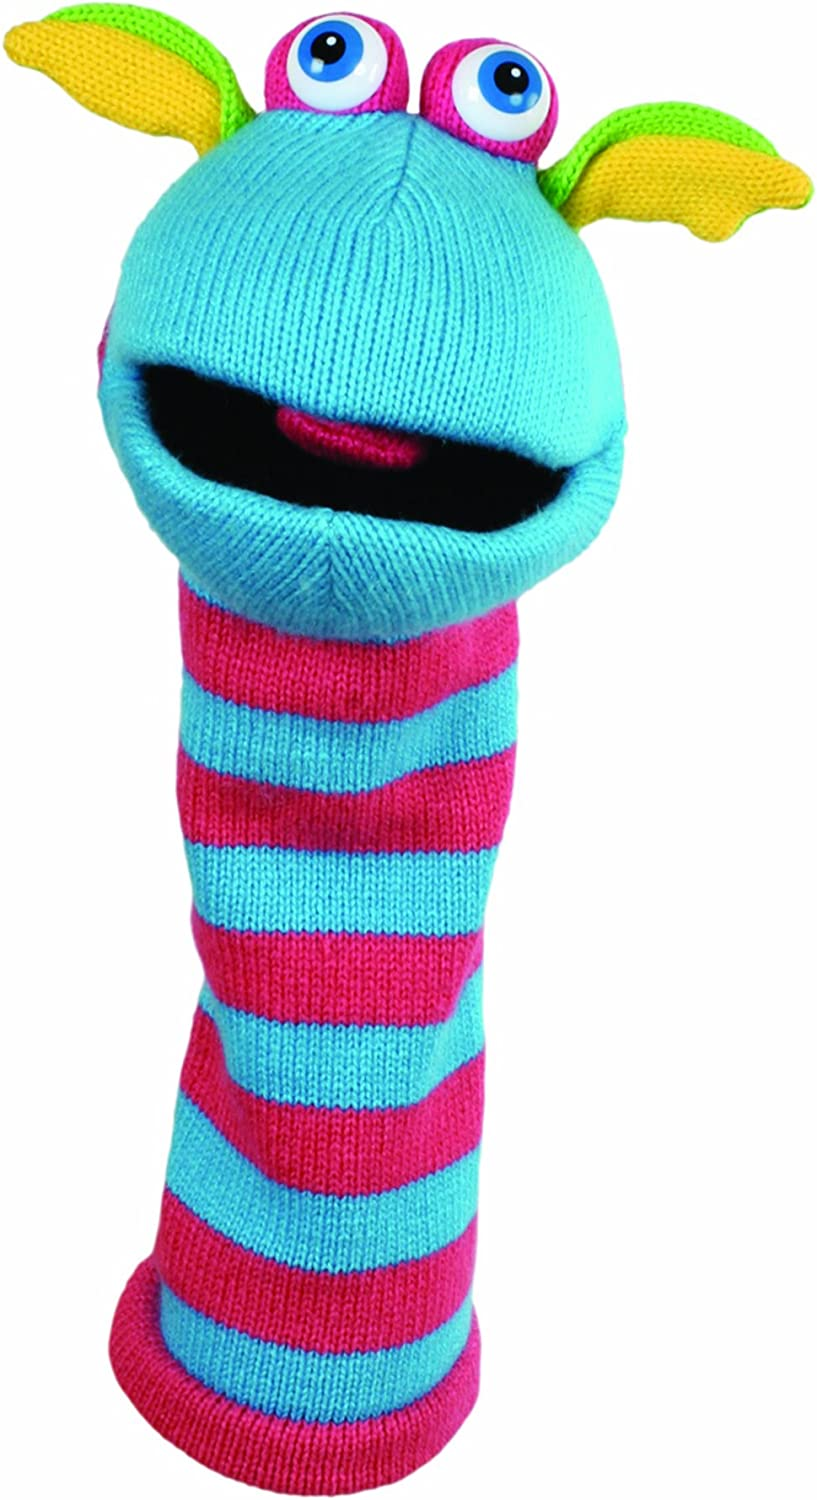 The Puppet Company - Knitted Puppet - Scorch